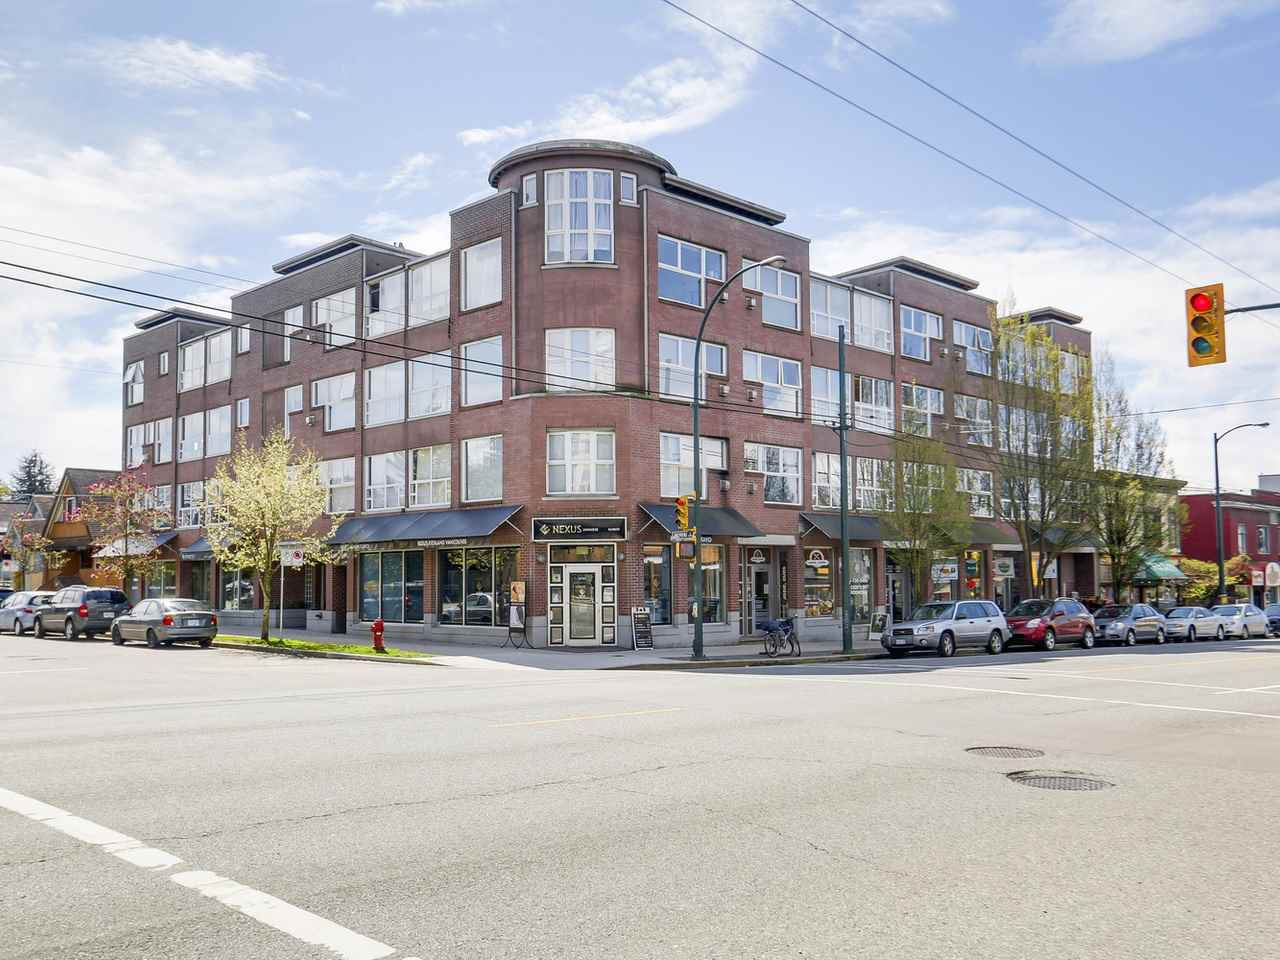 "Main Photo: 303 2025 STEPHENS Street in Vancouver: Kitsilano Condo for sale in ""STEPHENS COURT"" (Vancouver West)  : MLS®# R2161721"